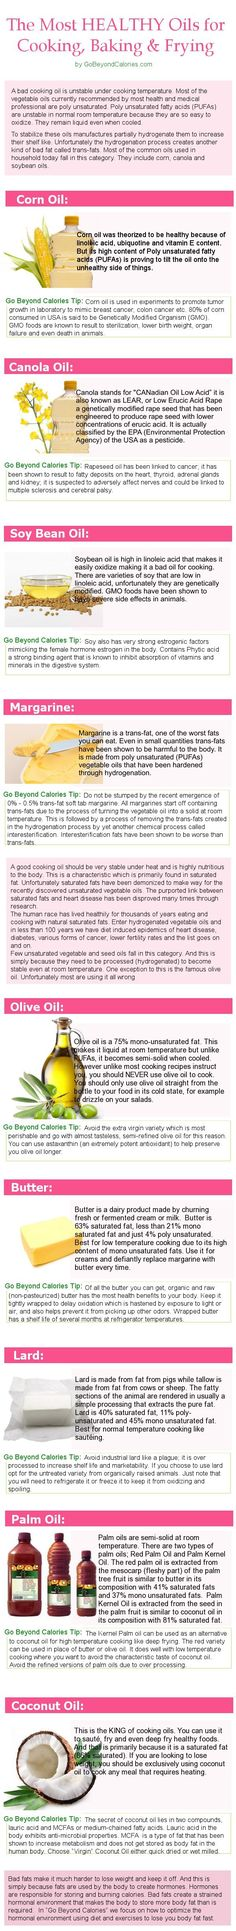 The BIGGEST lie when it comes to weight loss. The recommended fats by experts are all wrong and among most unhealthy of the foods we can eat